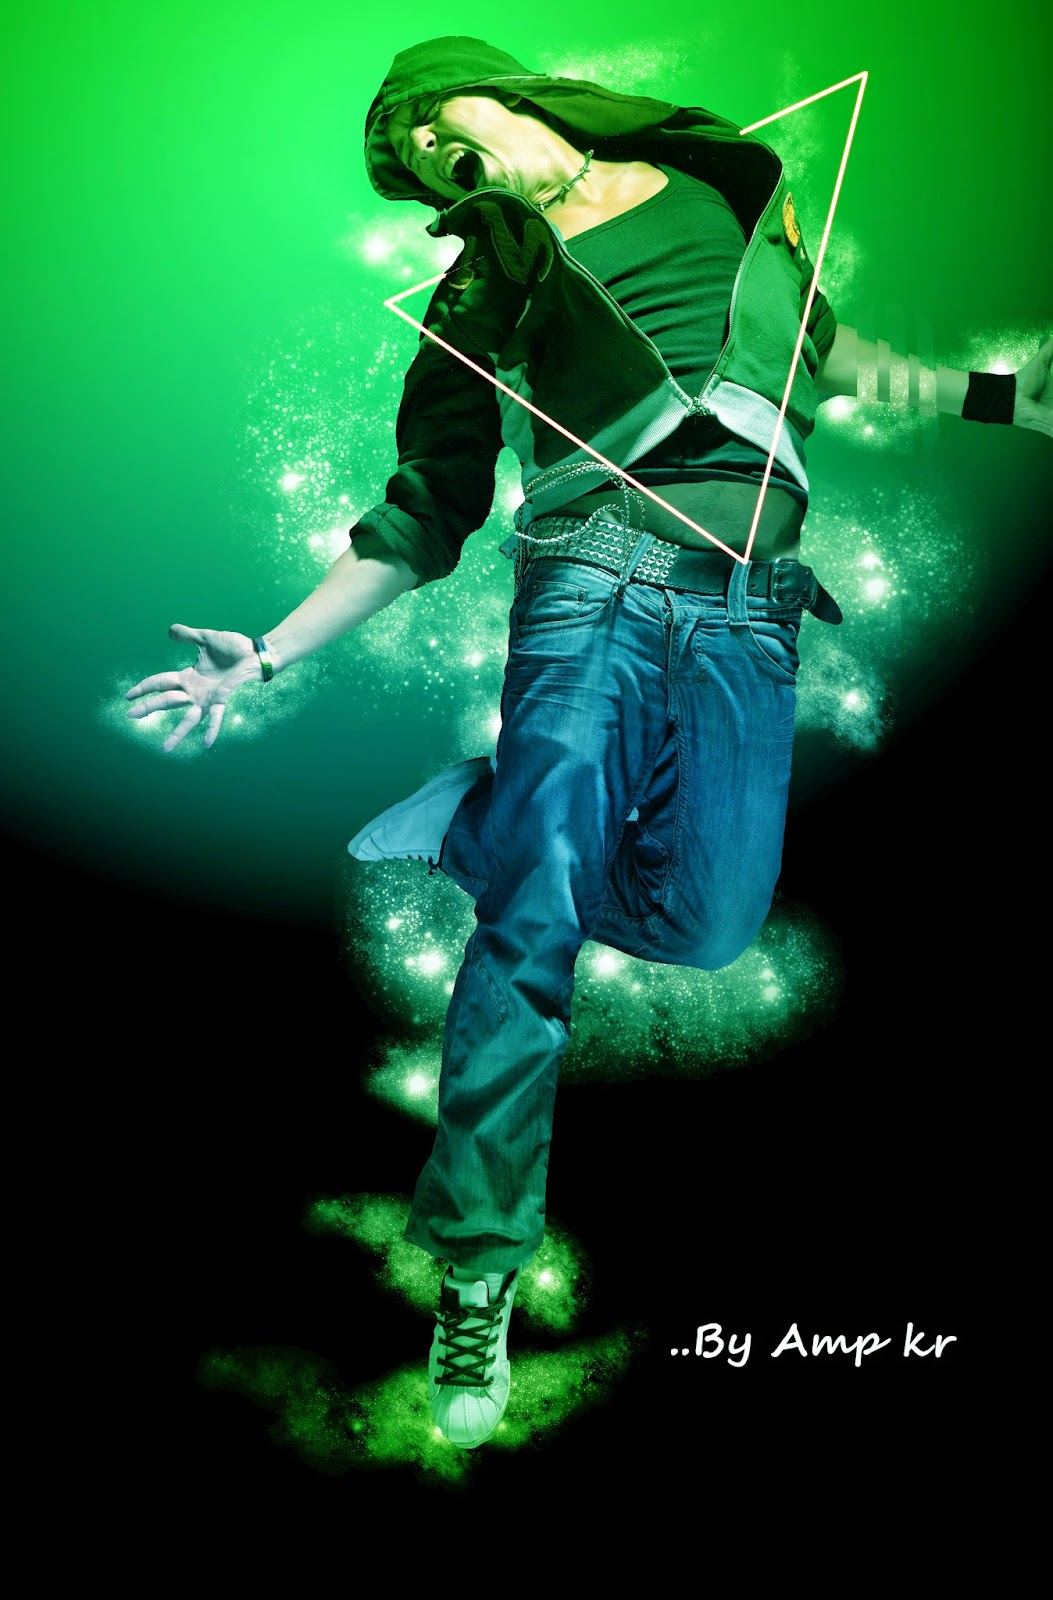 Photoshop light effects hiphop dancer after editing voltagebd Image collections